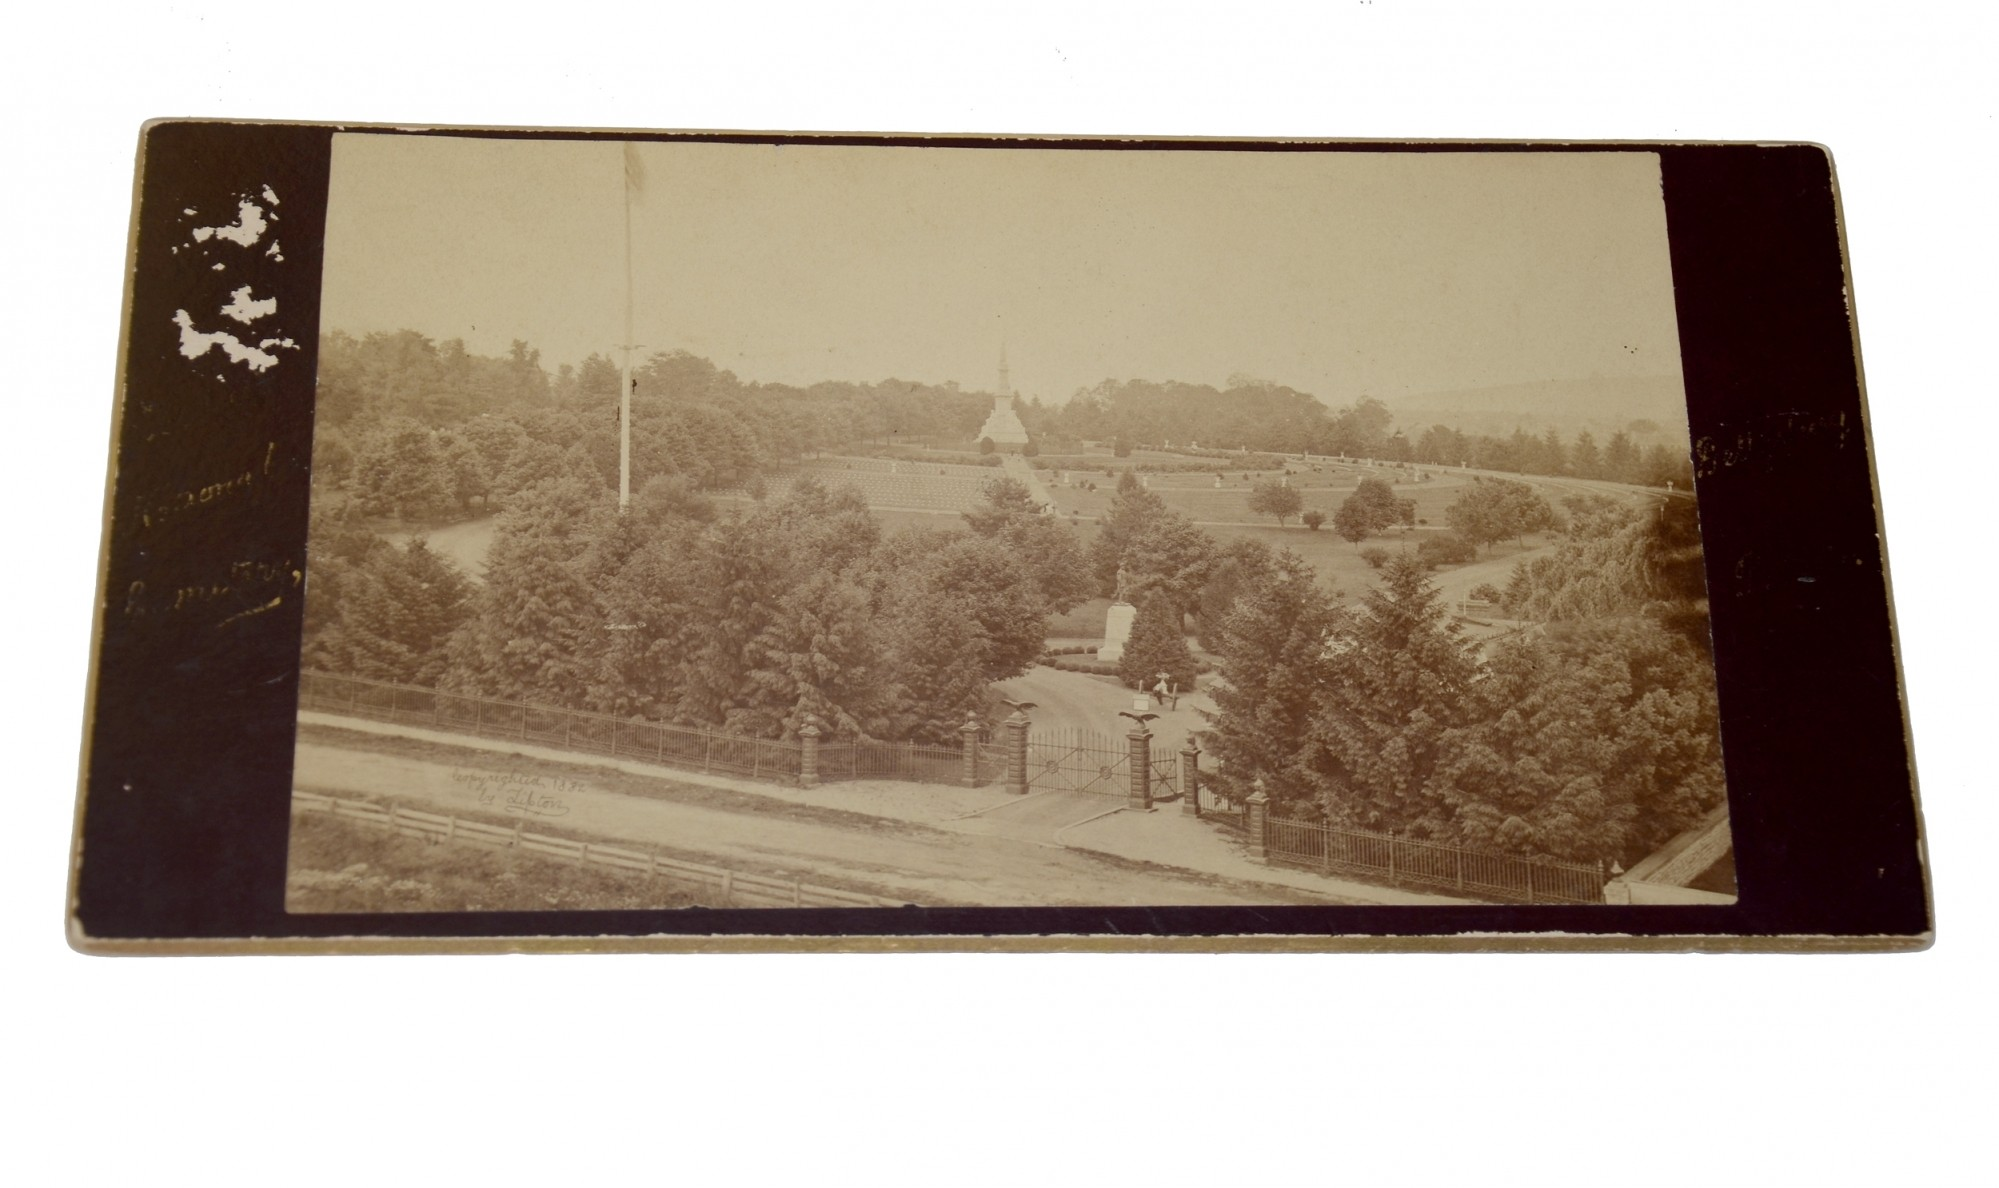 LARGE TIPTON CABINET CARD VIEW OF THE GETTYSBURG NATIONAL CEMETERY